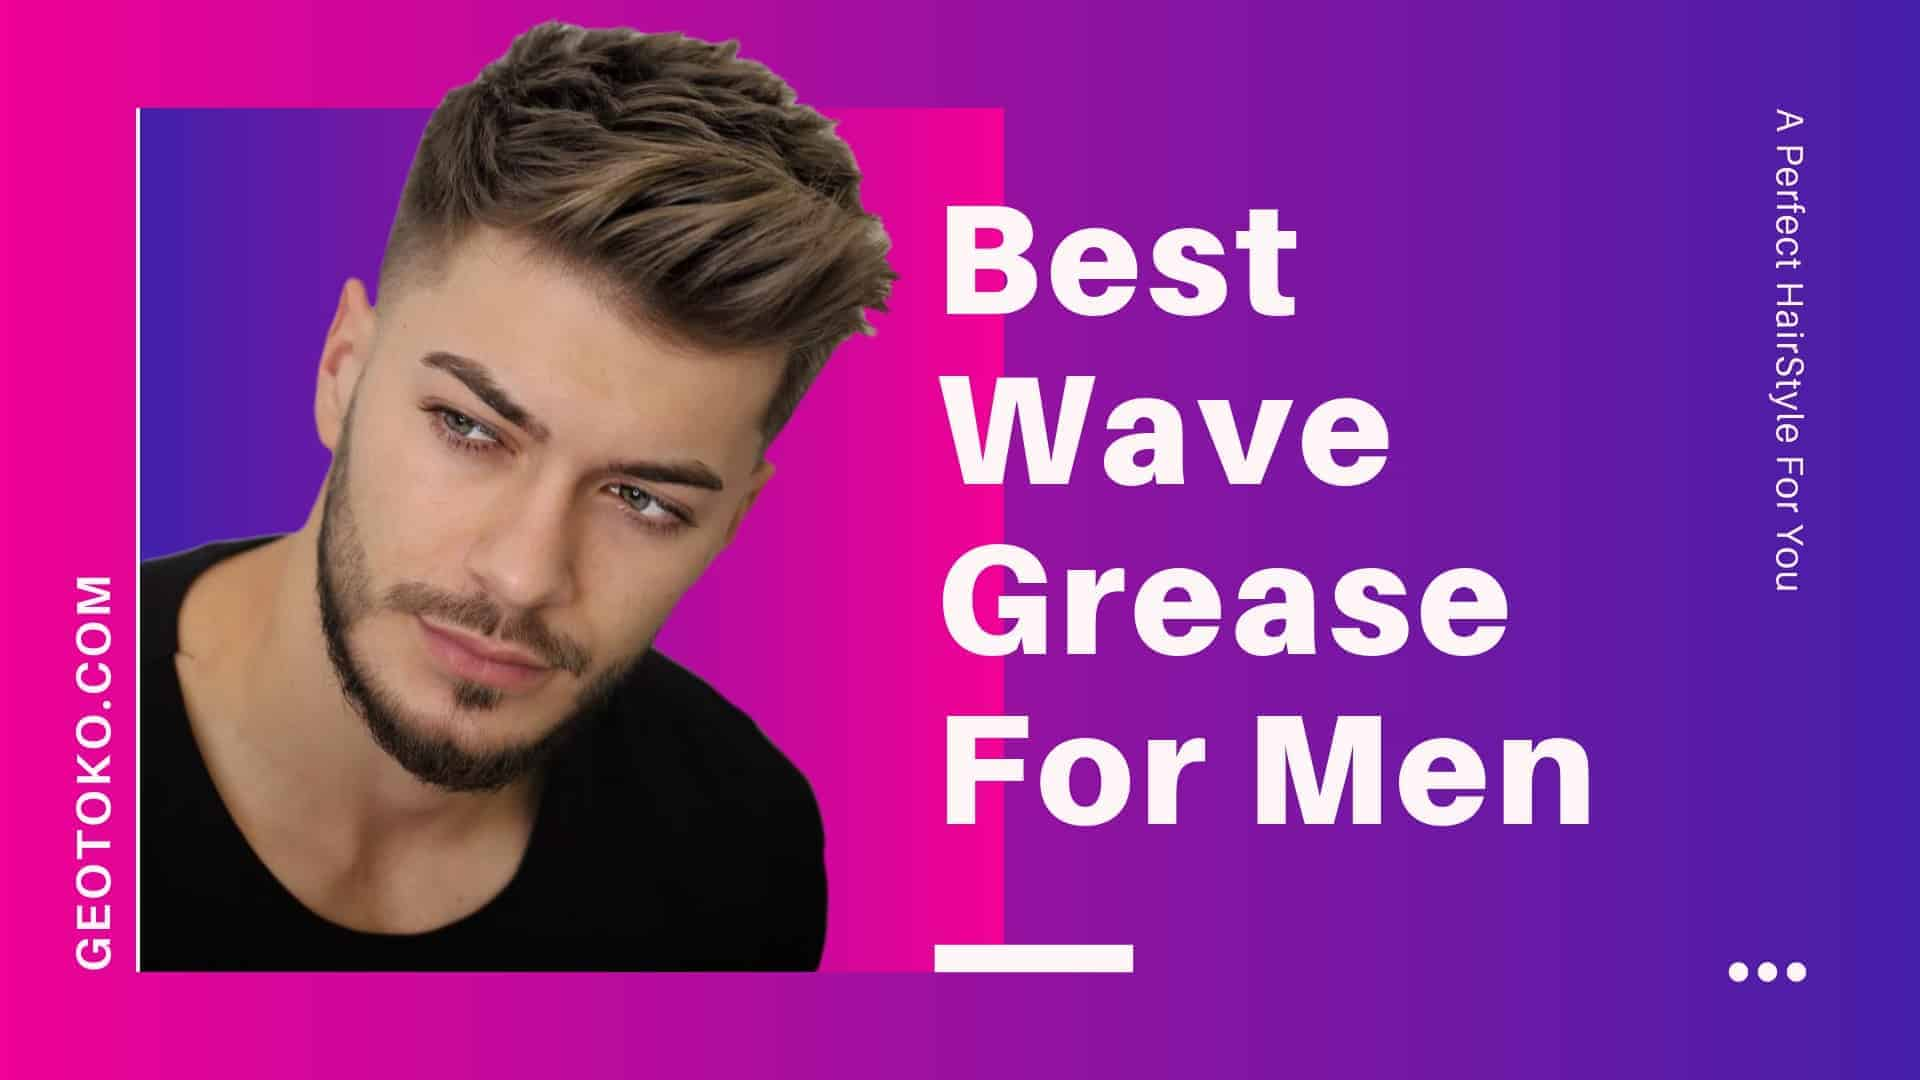 blog image for wave grease